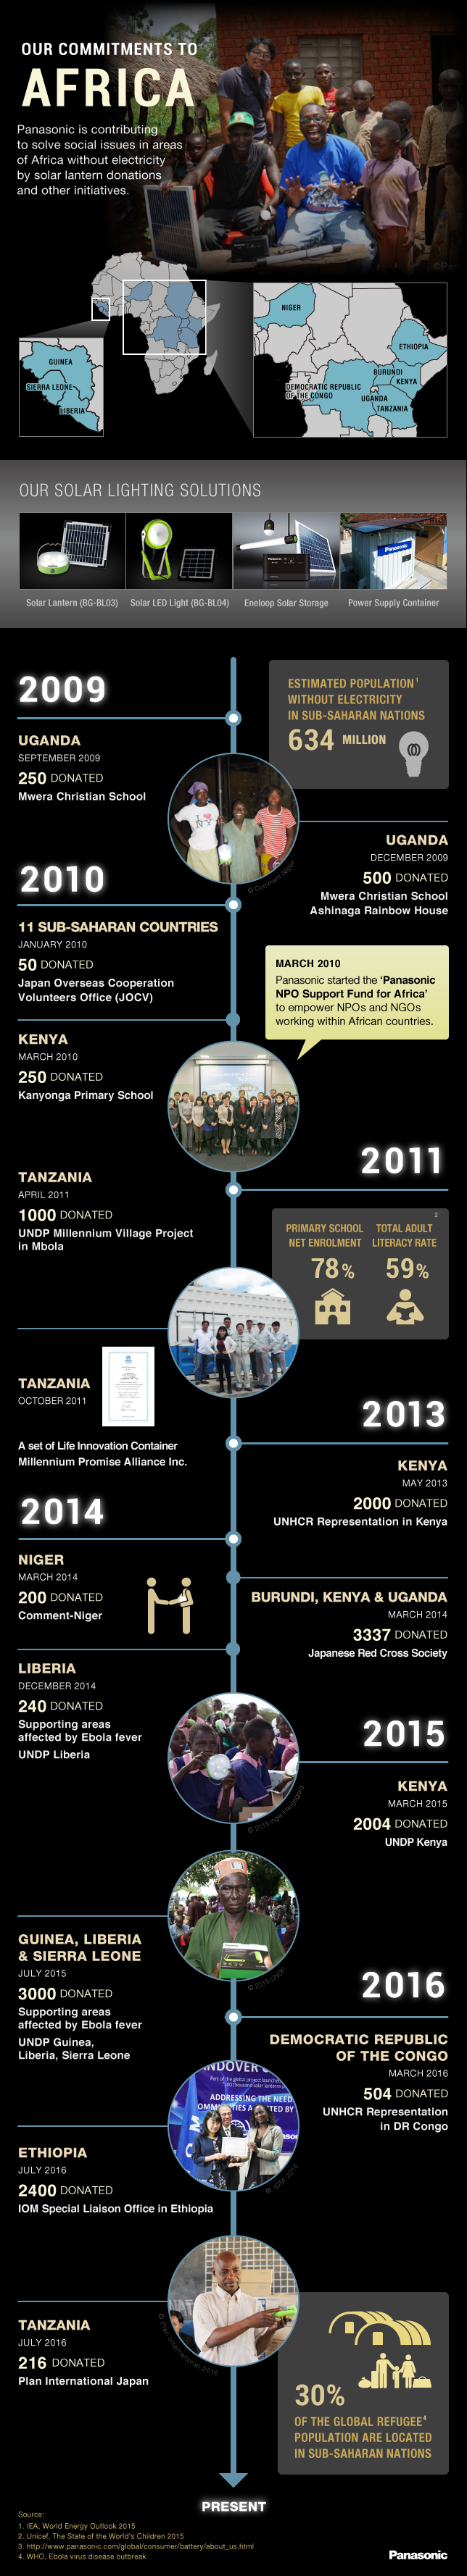 160803_Donation_Africa.png